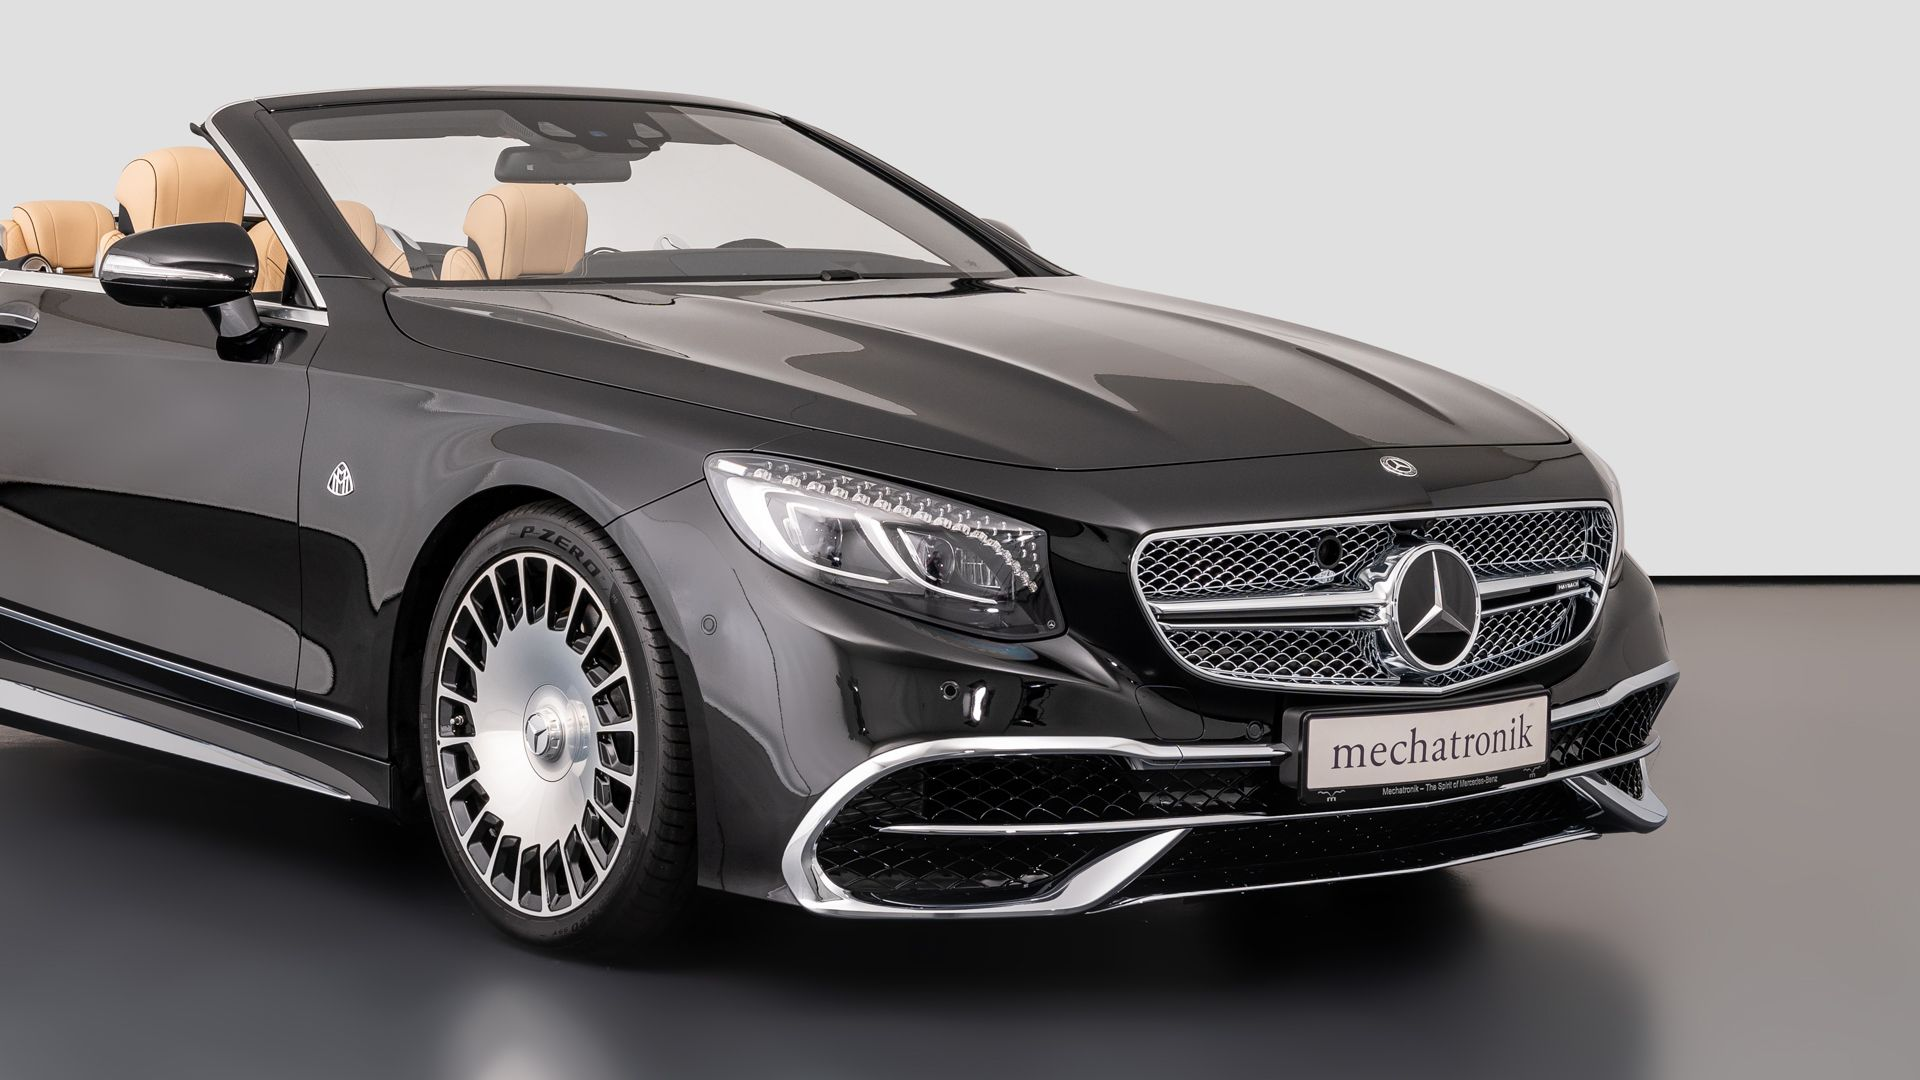 maybachs650cabriolet-cafeautovn-6